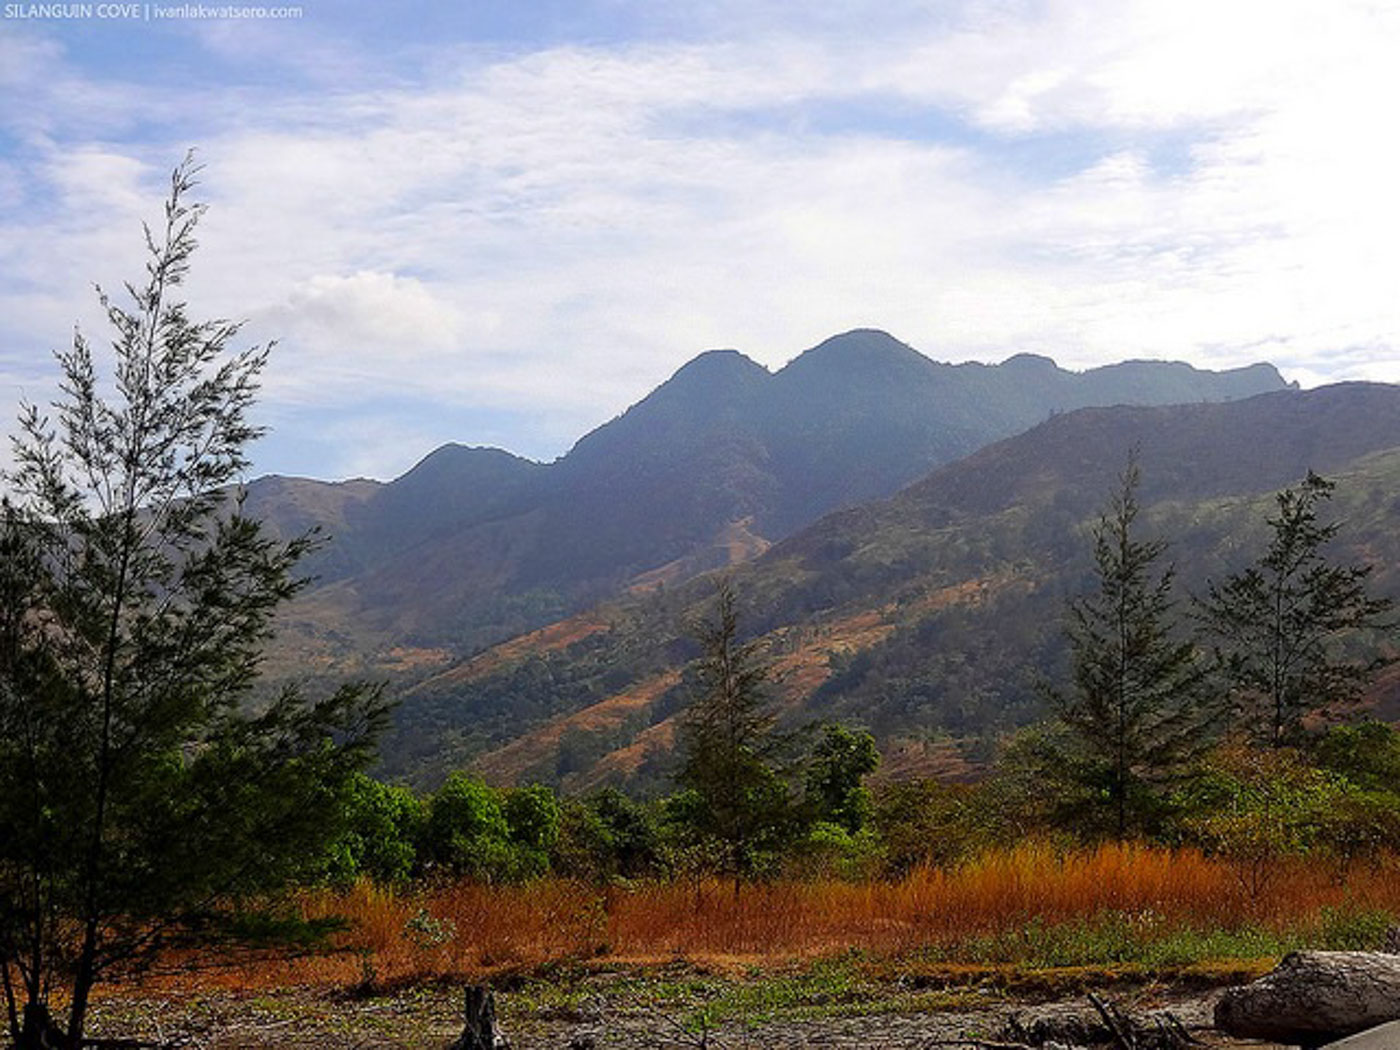 MOUNTAIN VIEW. What separates Silanguin from the rest of Zambales are scenic mountains. Photo by Ivan Briu00f1as Cultura